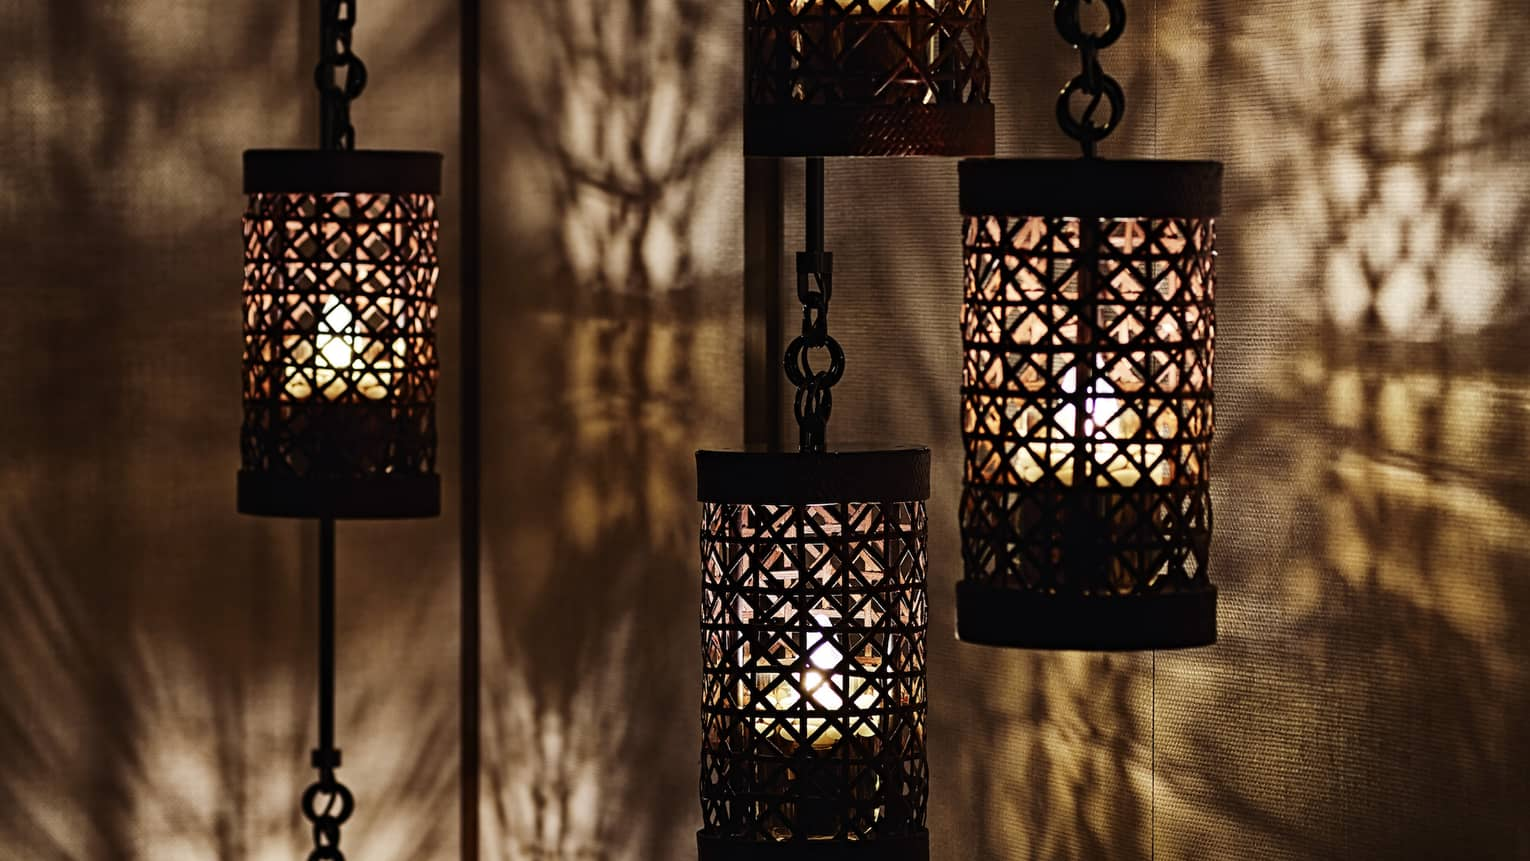 Close-up of black lanterns hanging from chains, light reflected on walls